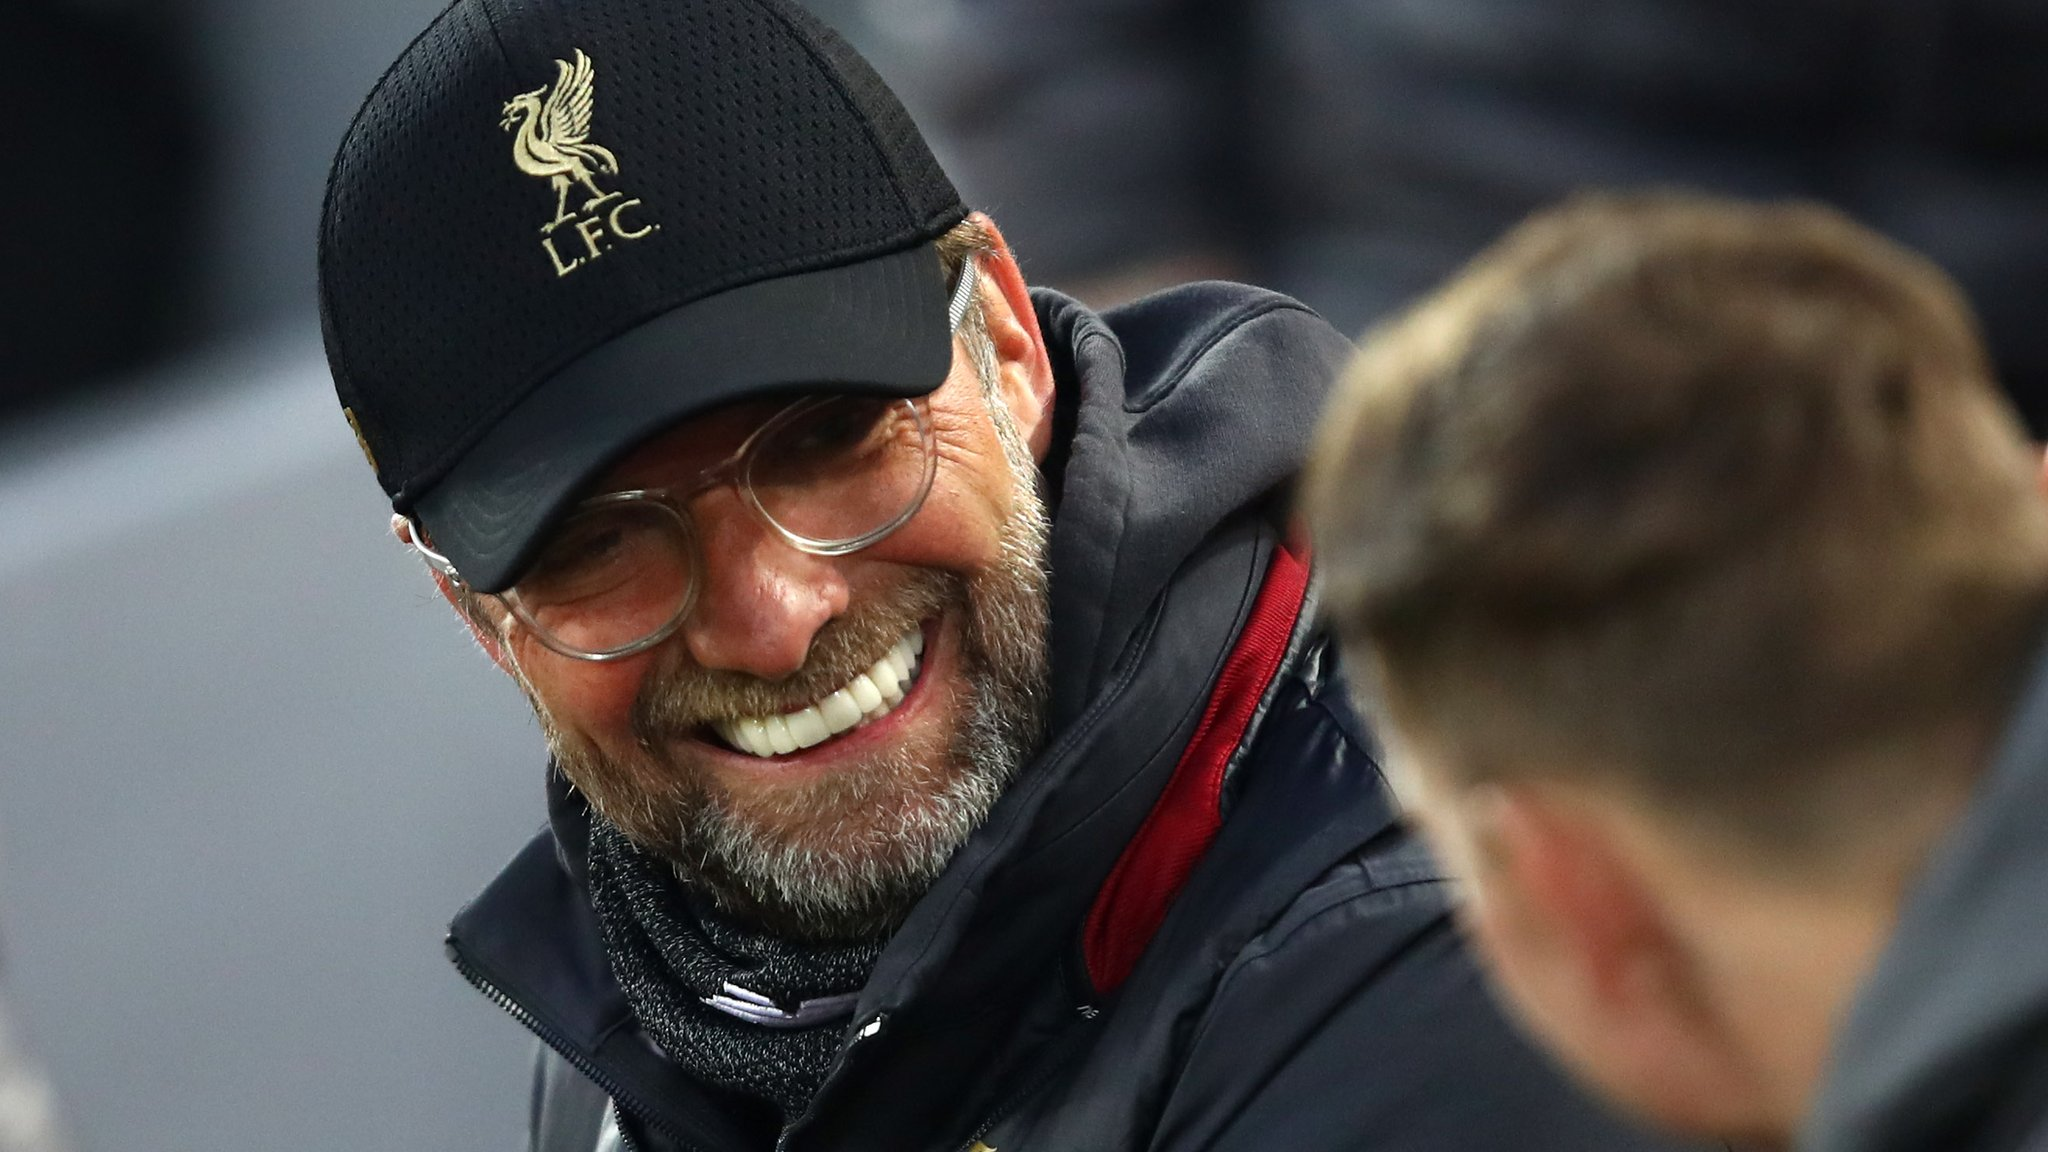 sports shoes 4c741 b7cf1 Liverpool 2-0 Porto -  Visitors looked like a bottom-half Premier League  team  - Liverpool boss Jurgen Klopp has nothing to fear from Porto in the  second ...